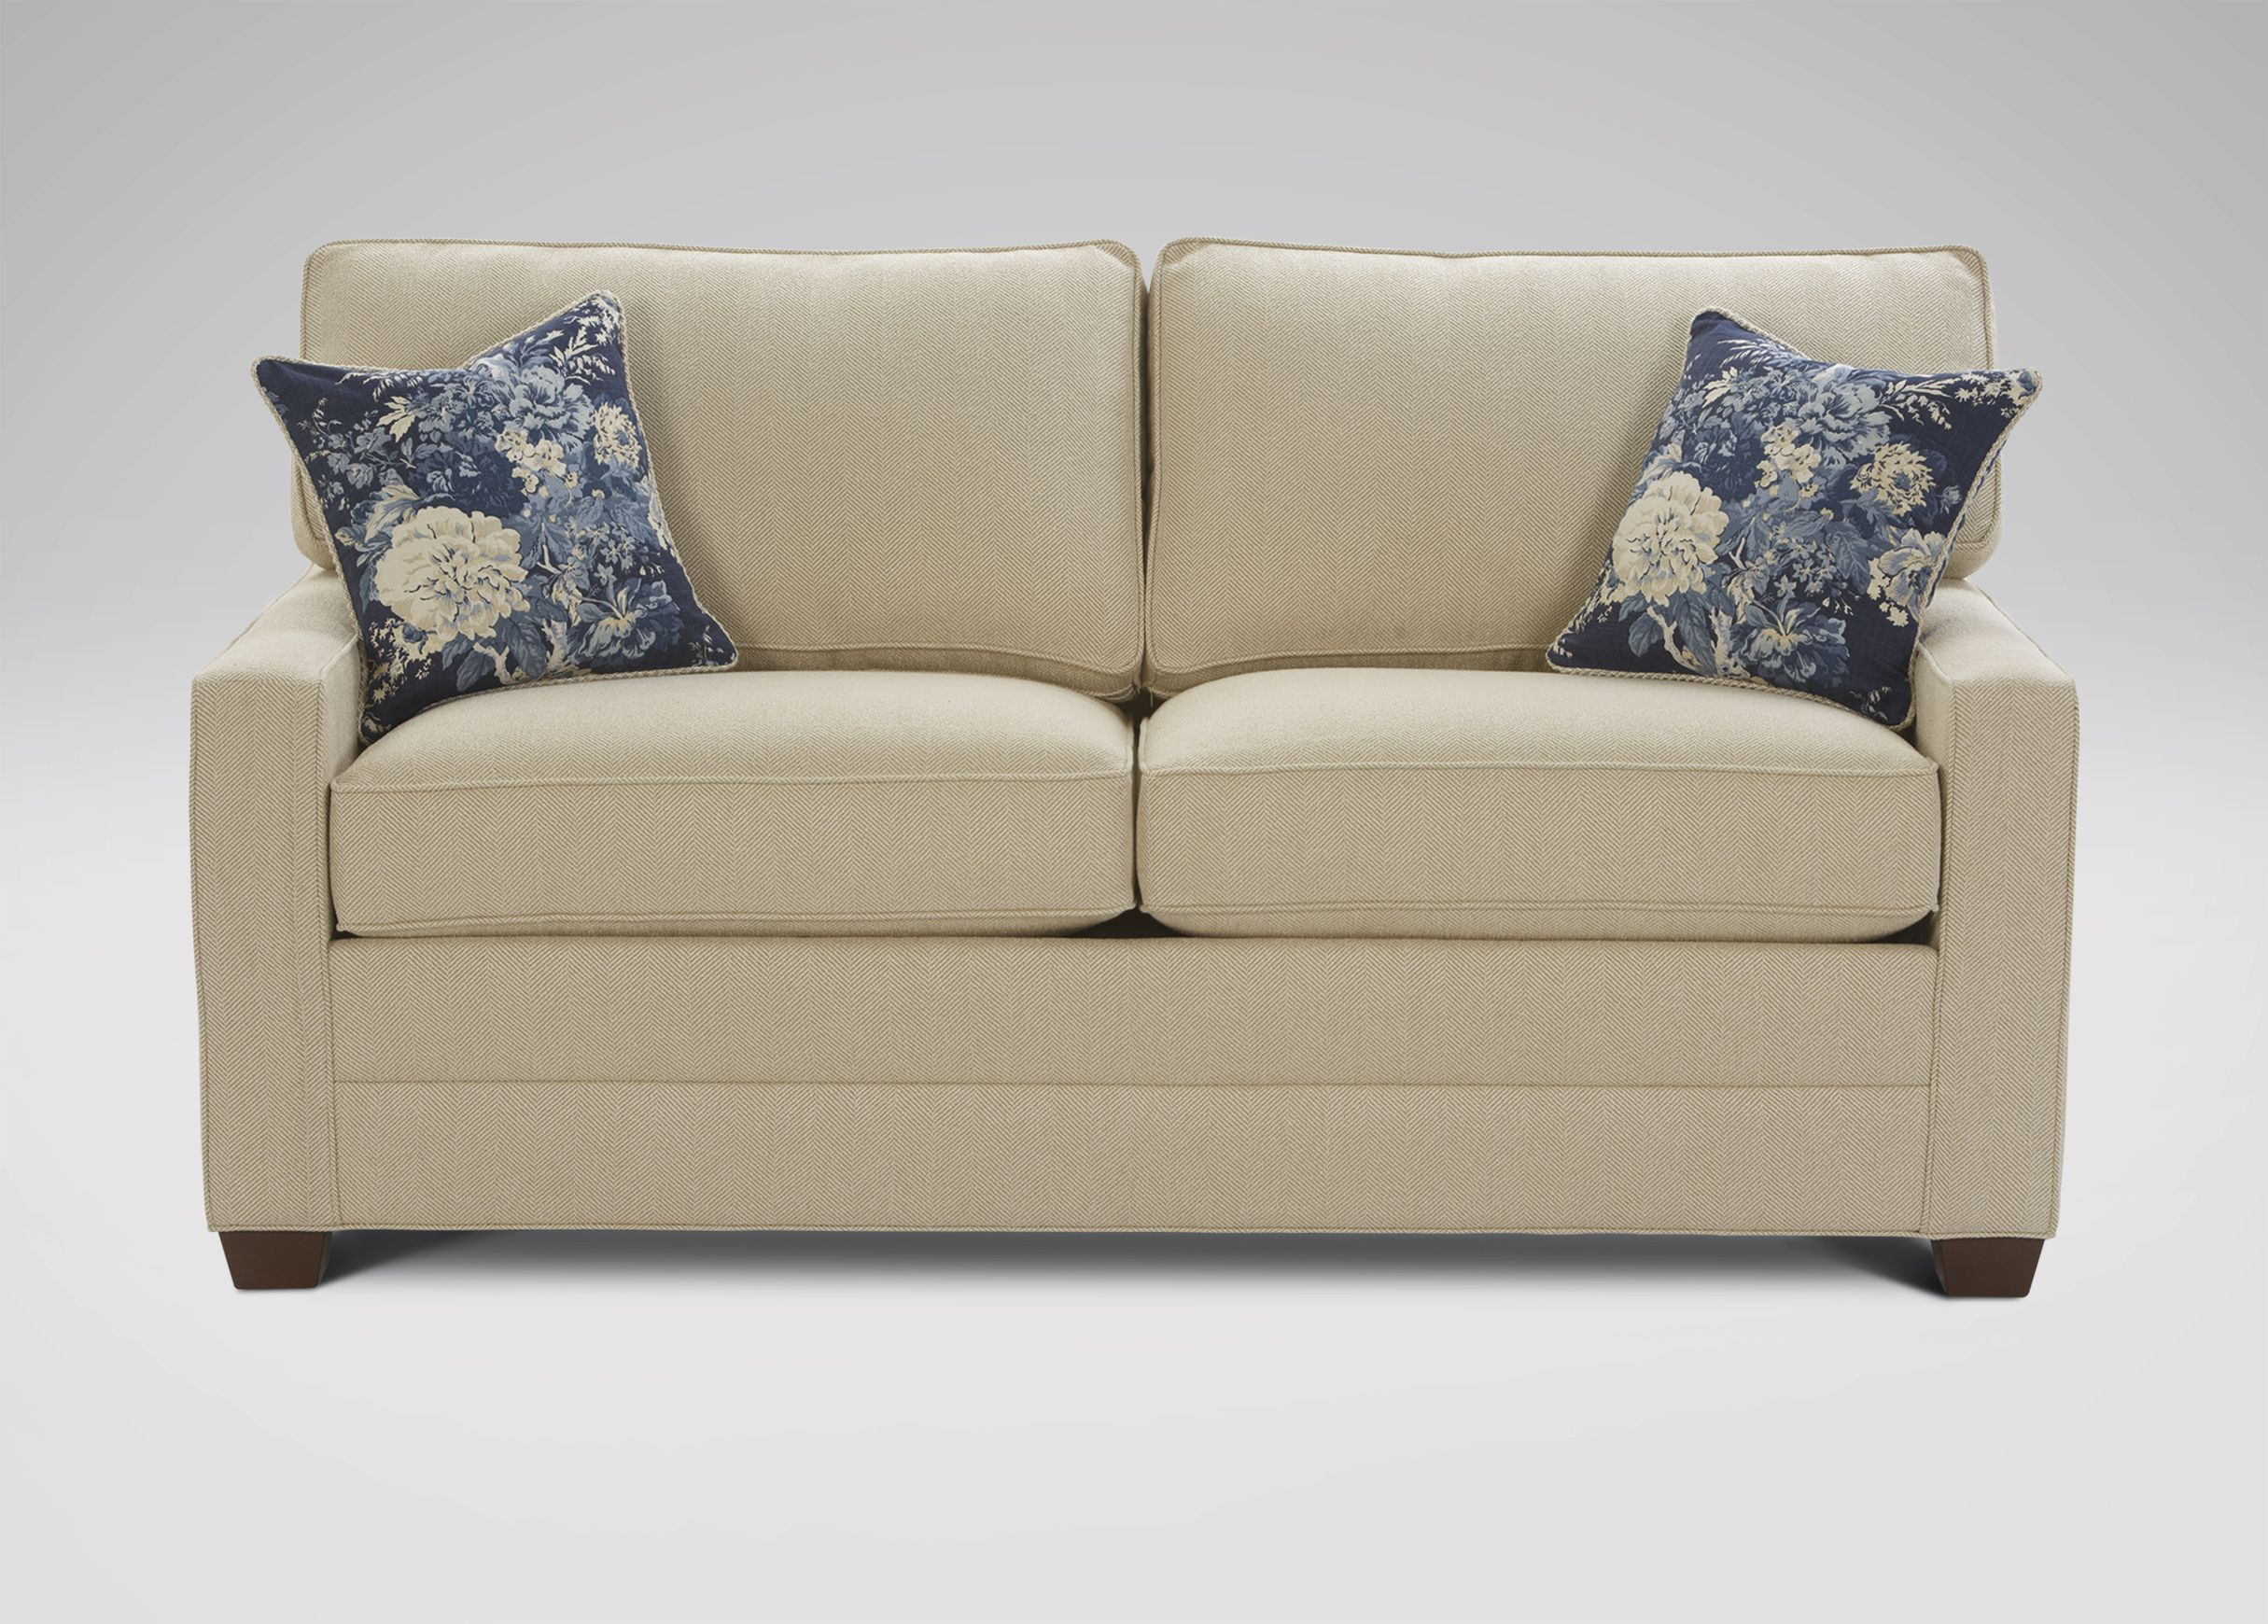 70 Quot Sofa 2 Seater Detached T Cushions Bennett Track Arm